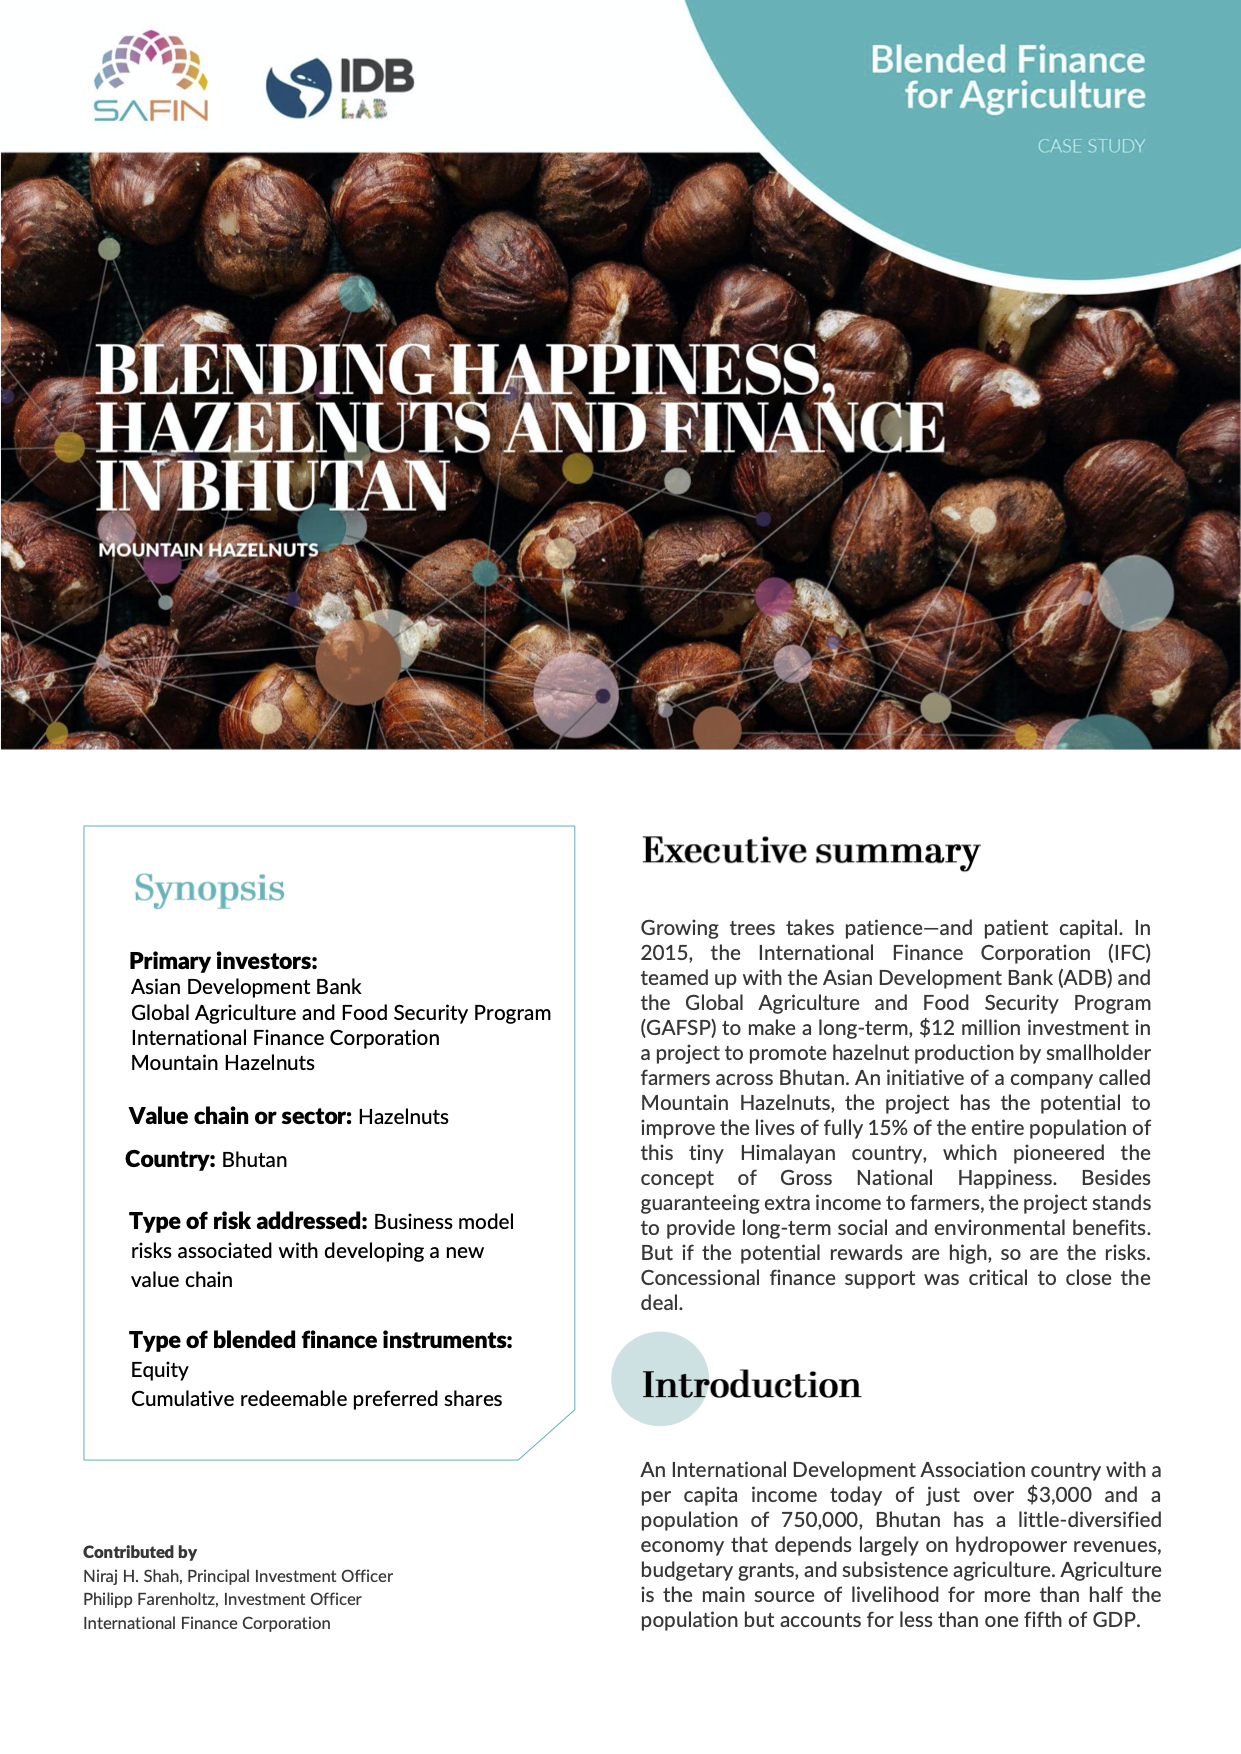 Blending Happiness, Hazelnuts and Finance in Bhutan